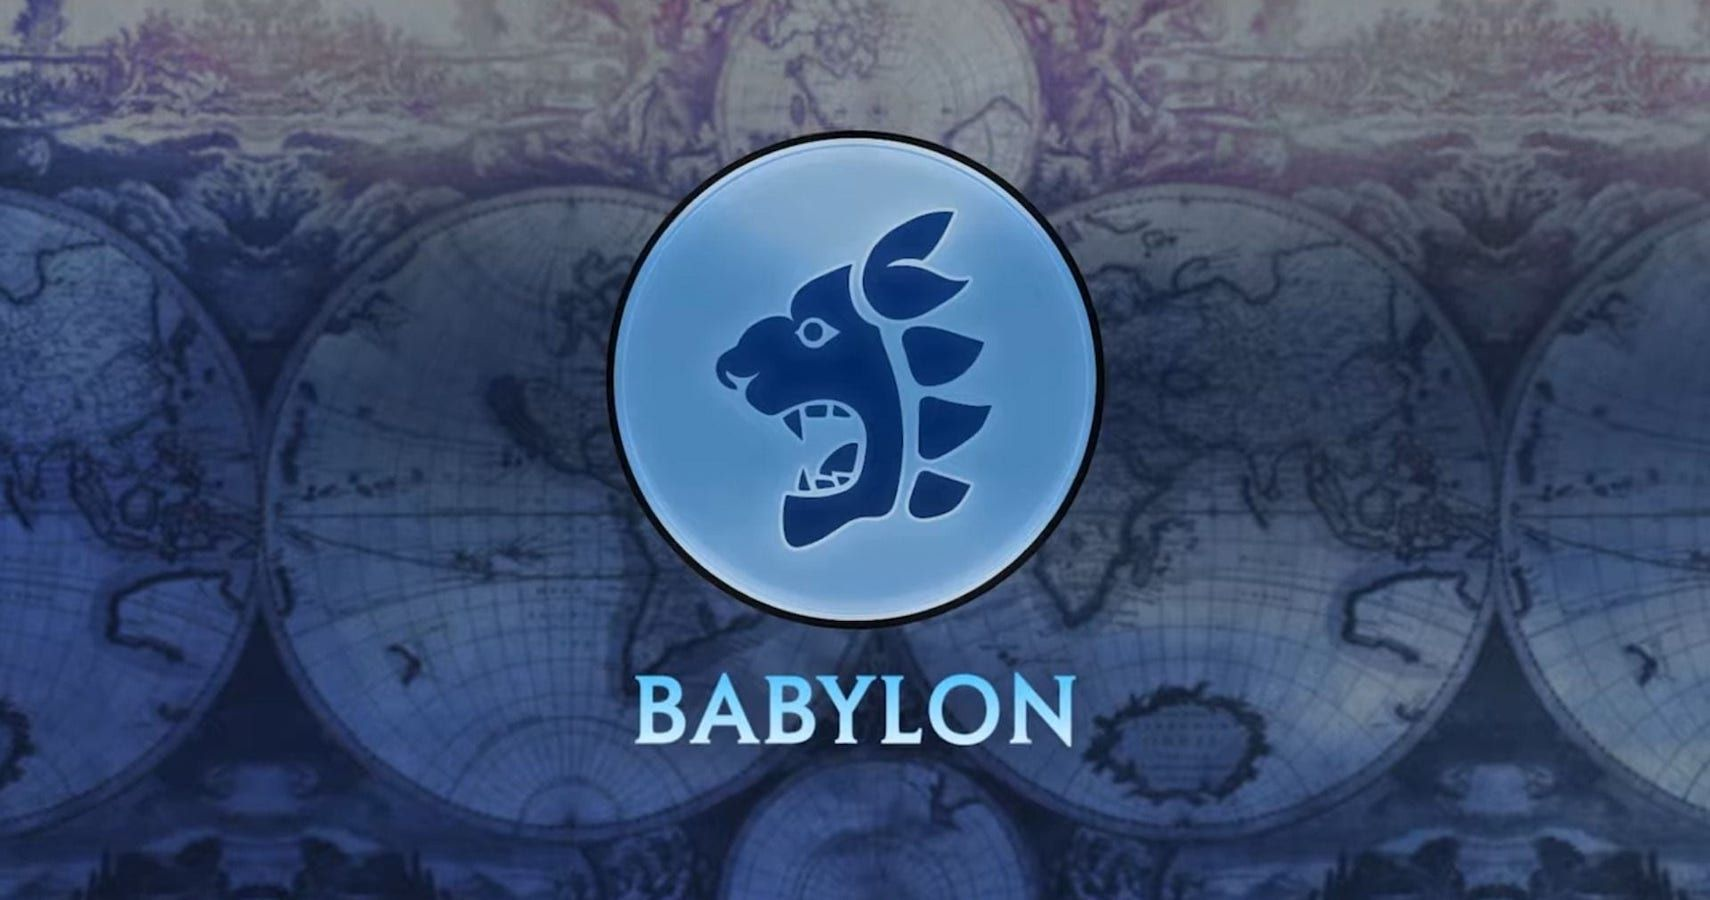 Civ 6 Finally Adds Babylon As Its Own Full Civilization, Along With New City-States And Great People